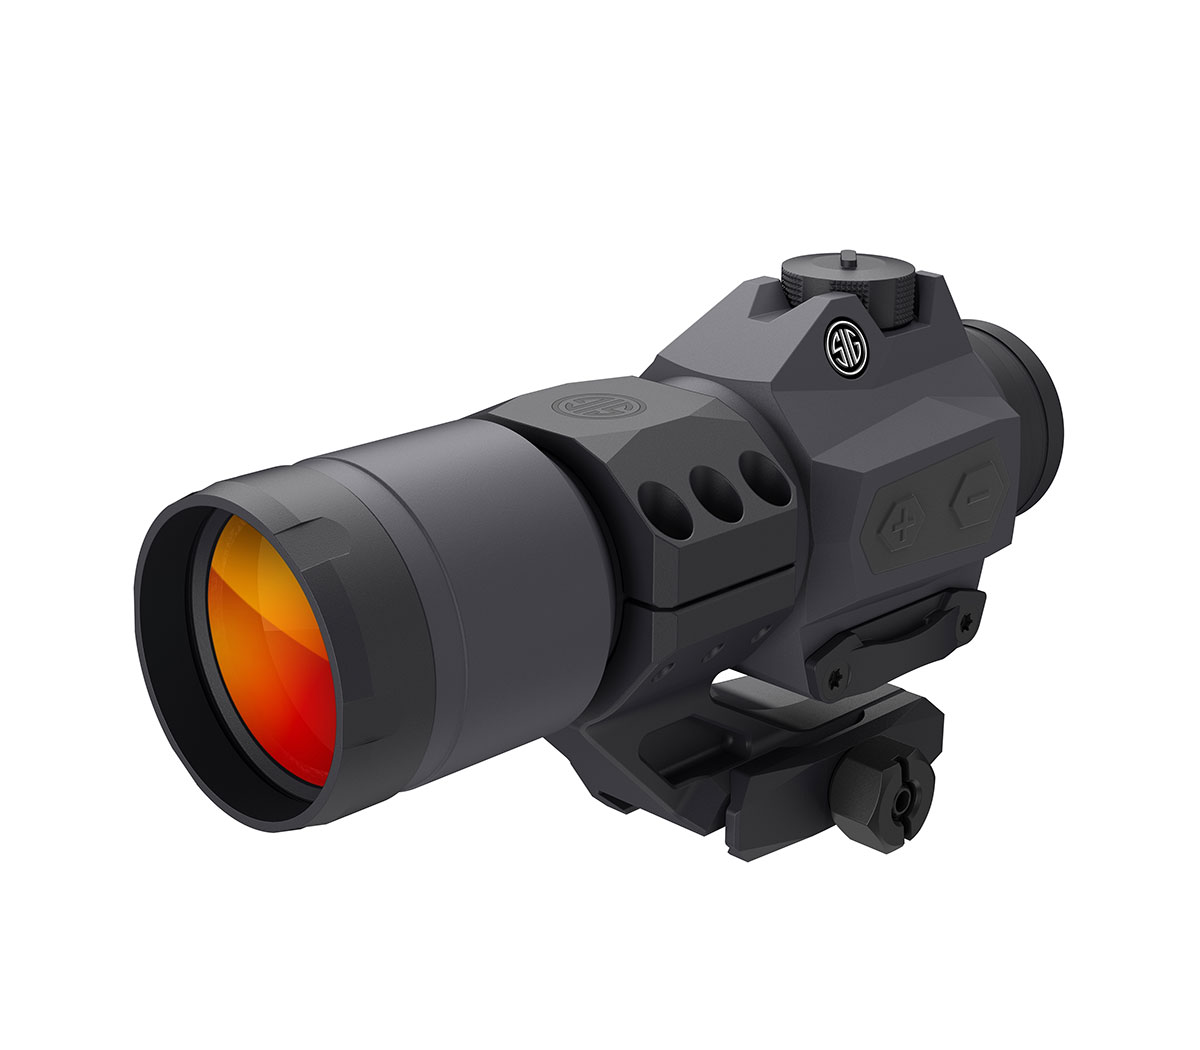 Find Your Target With The ROMEO6 Red-Dot From Sig Sauer Electro-Optics